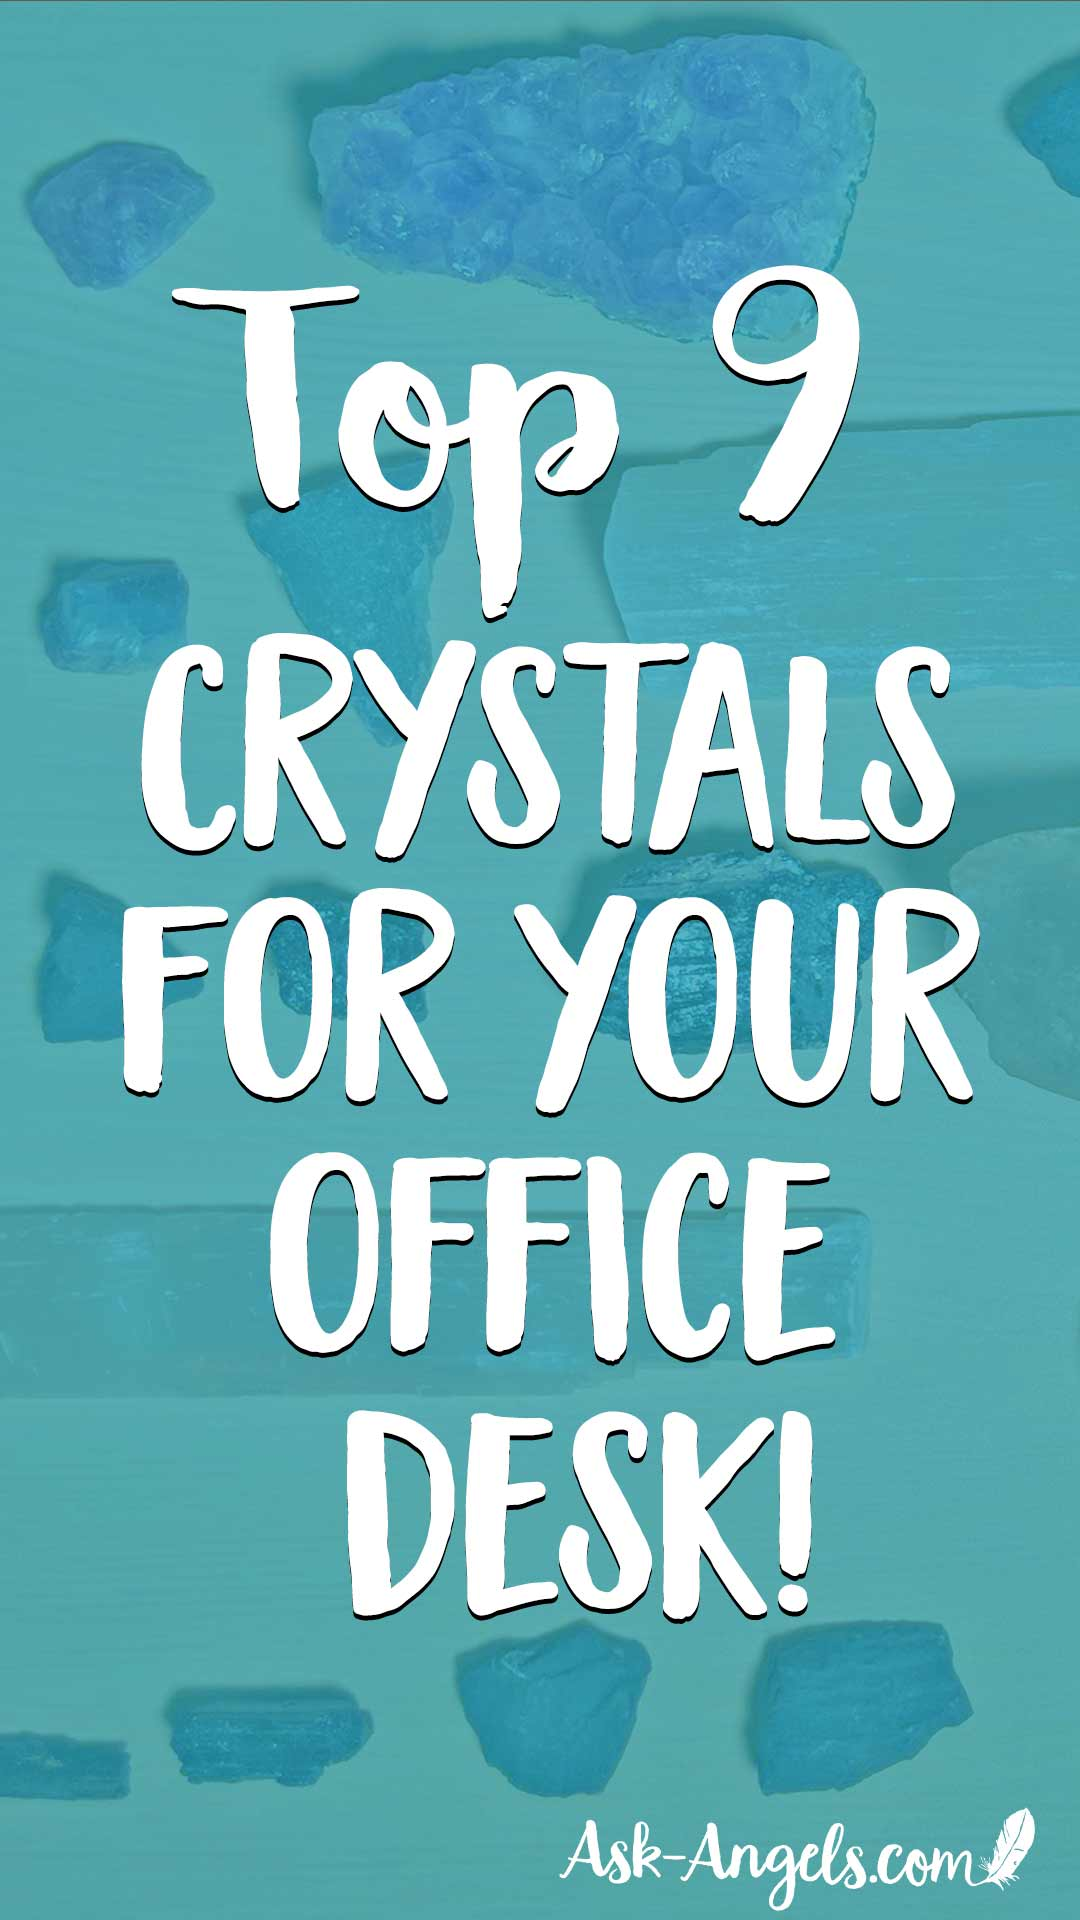 Learn the Top Crystals for your Office Desk and Workplace Here Now